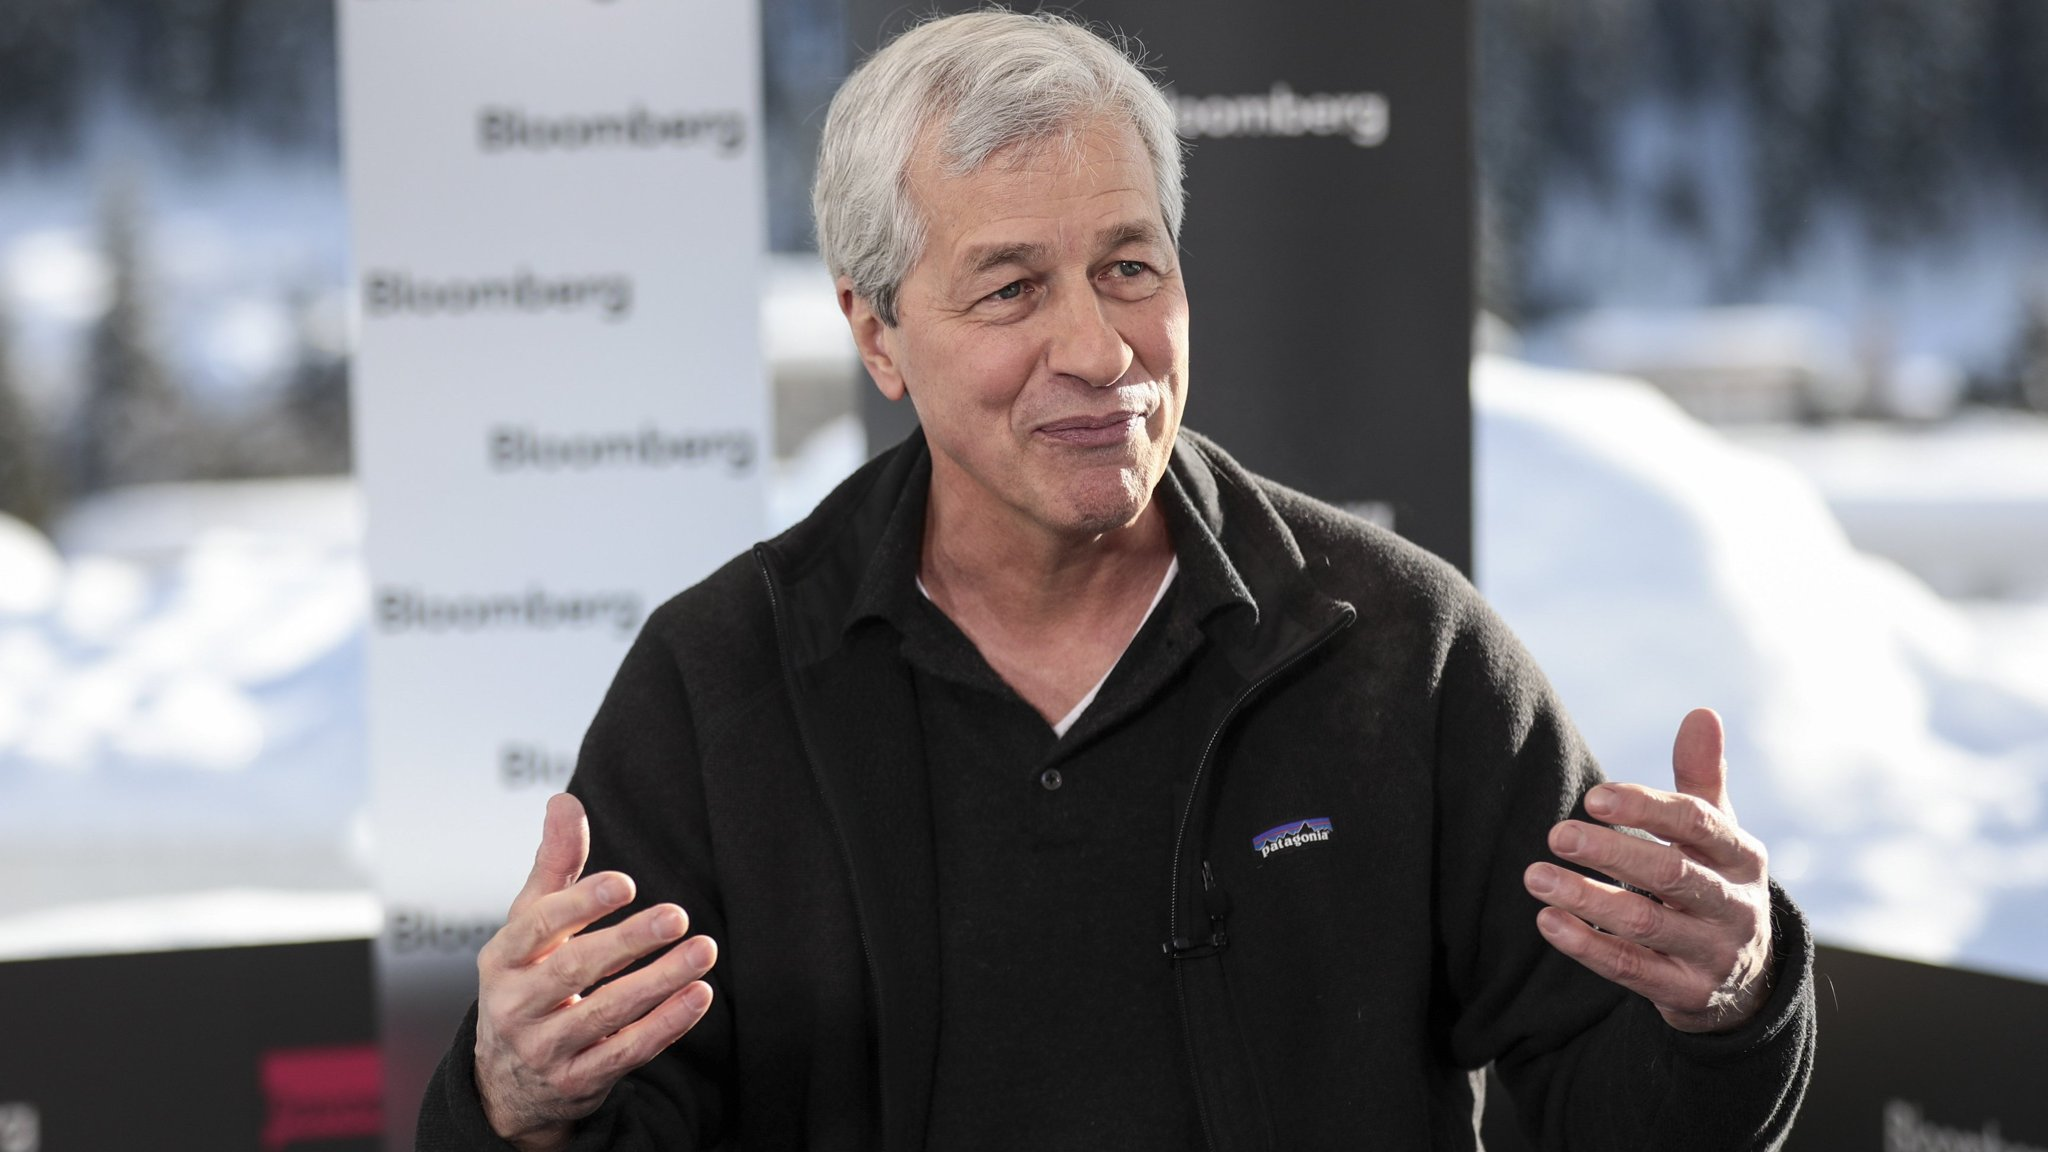 Dimon signs on for another five years as JPMorgan chief